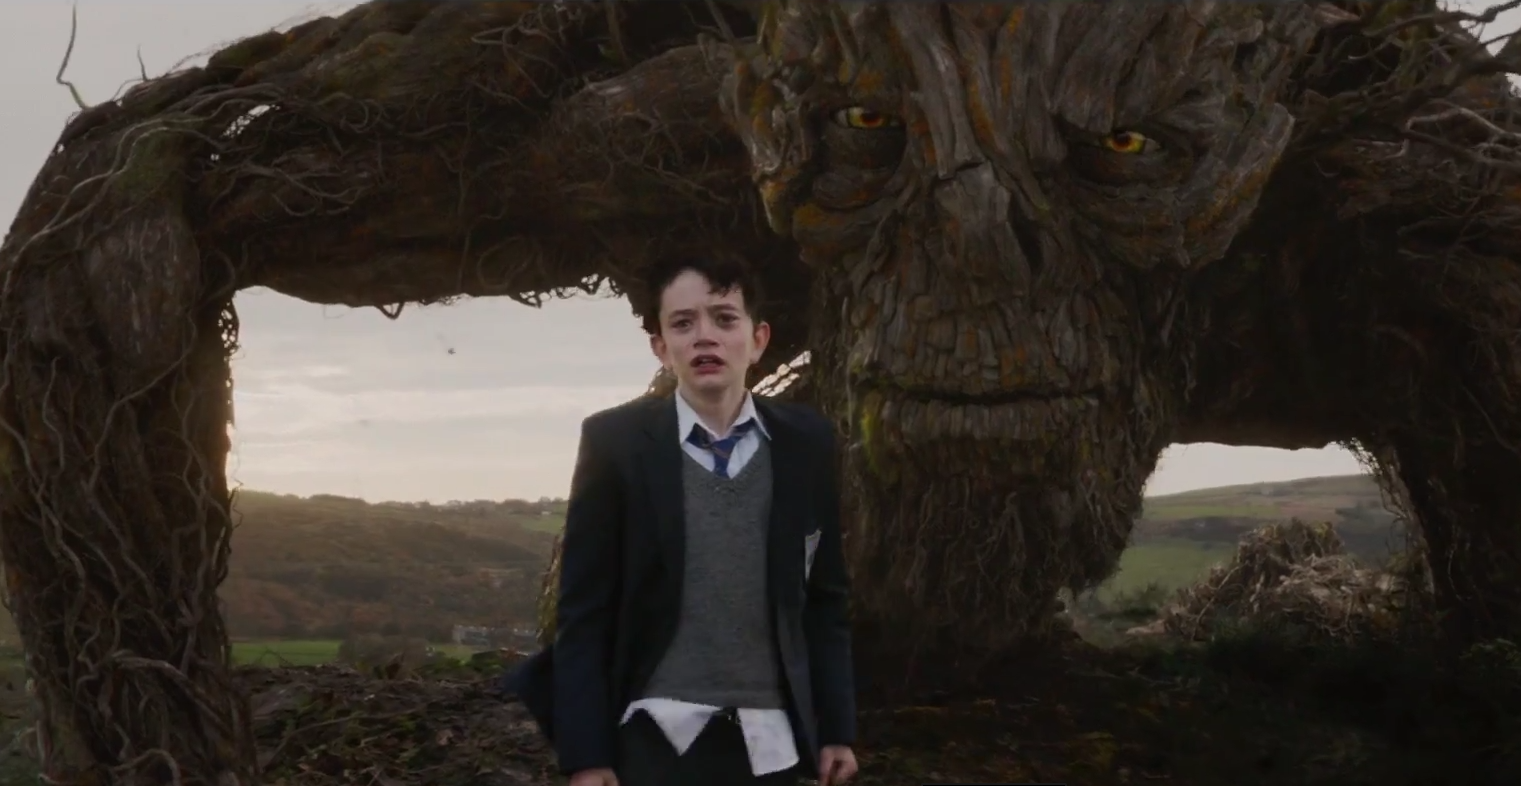 World Death Clock >> A Monster Calls new trailer shows that life is in the eyes | SciFiNow - The World's Best Science ...